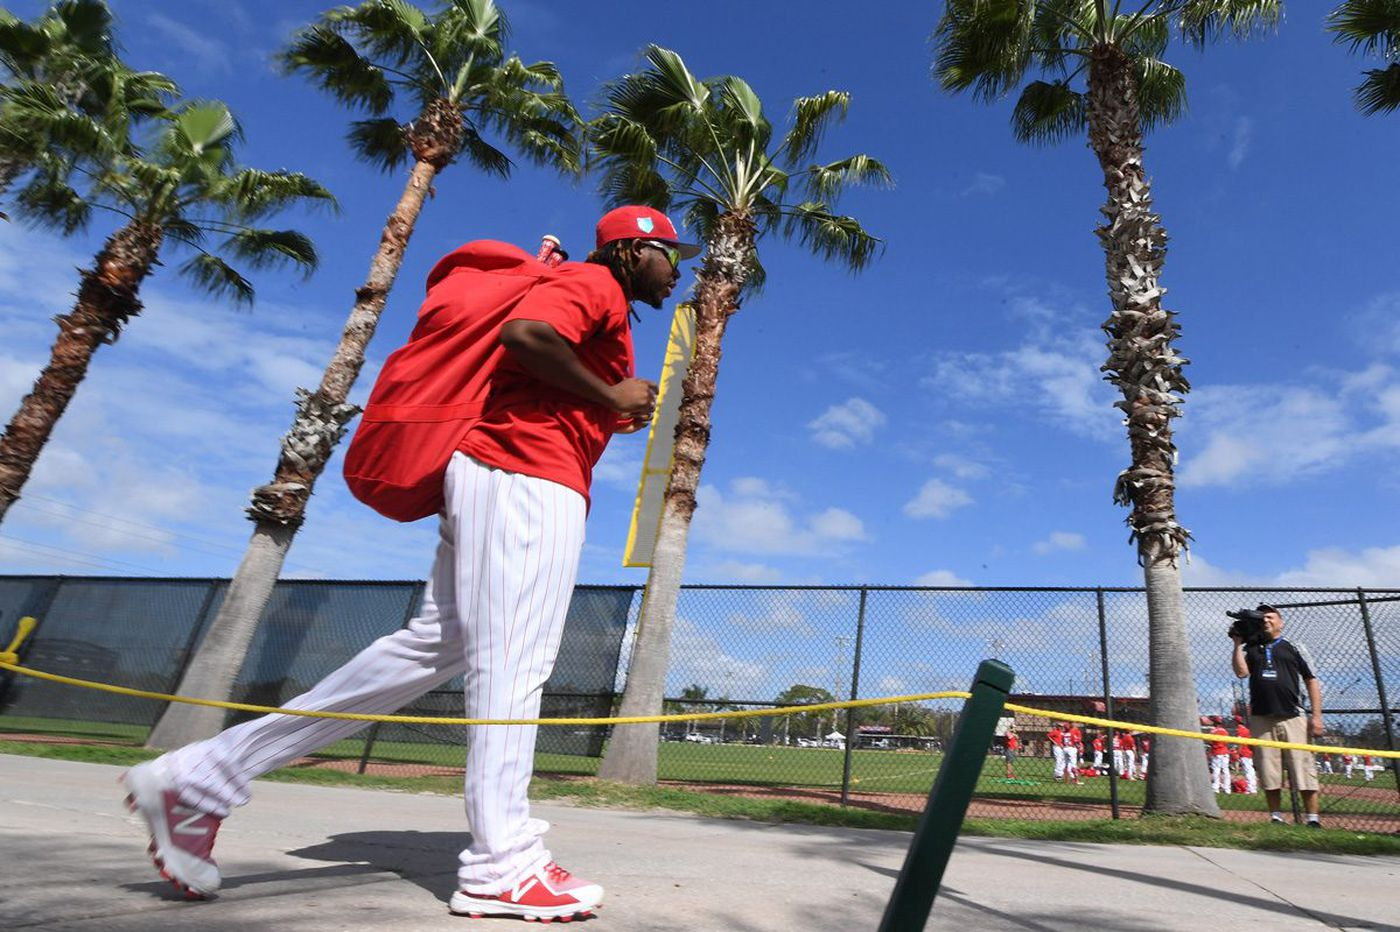 Phillies spring training schedule: How to watch on TV, online stream